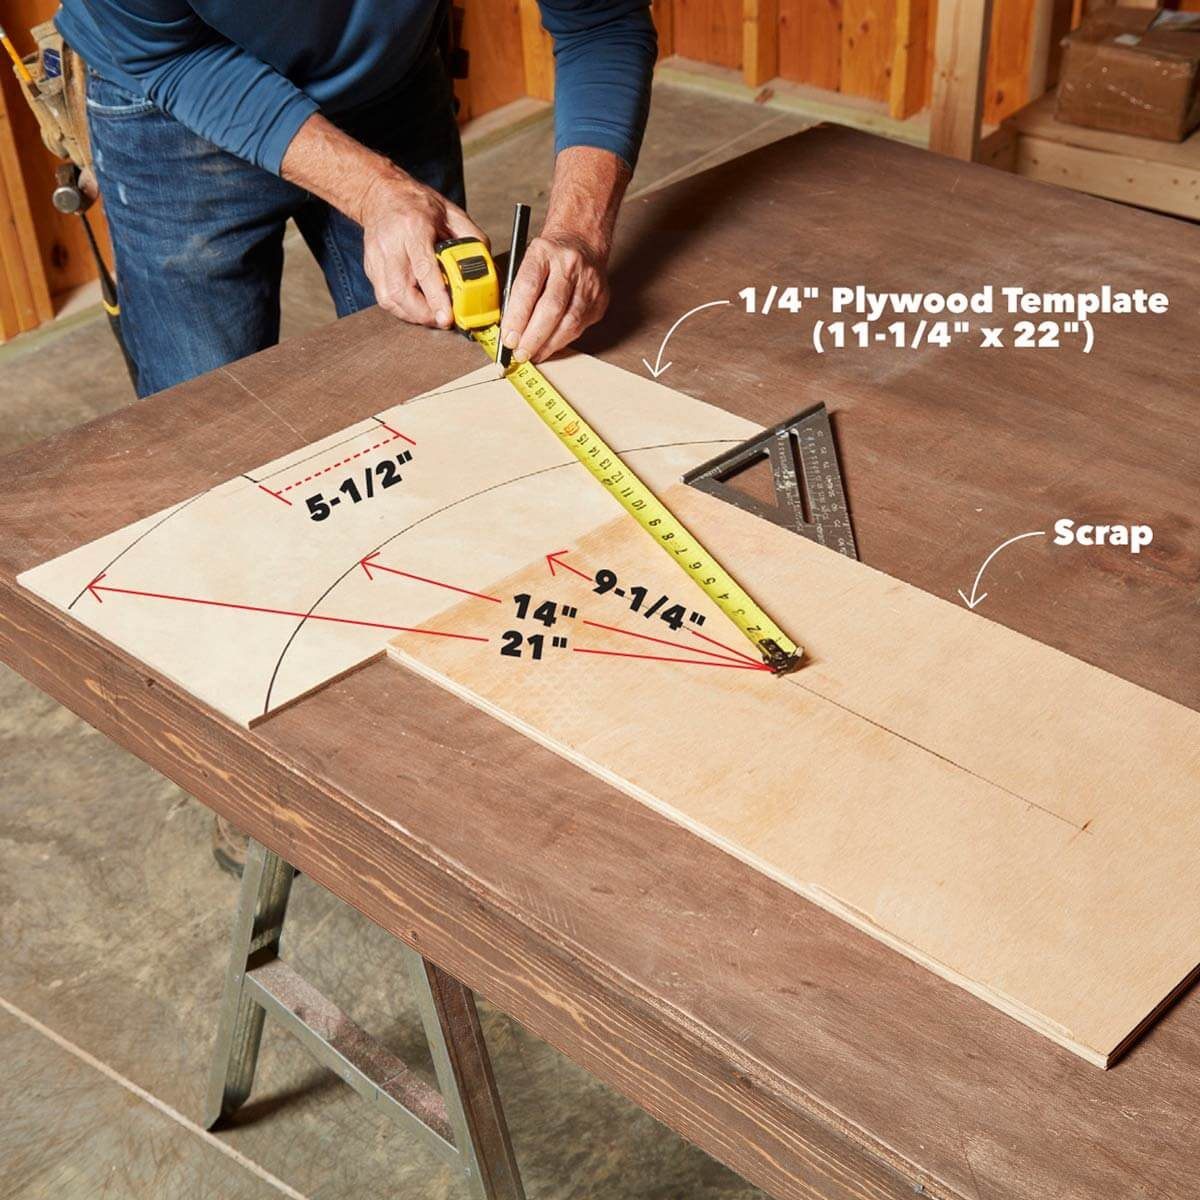 Heavy Duty Viking Bench The Family Handyman Train Horn Wiring Diagram And Table Leg Template